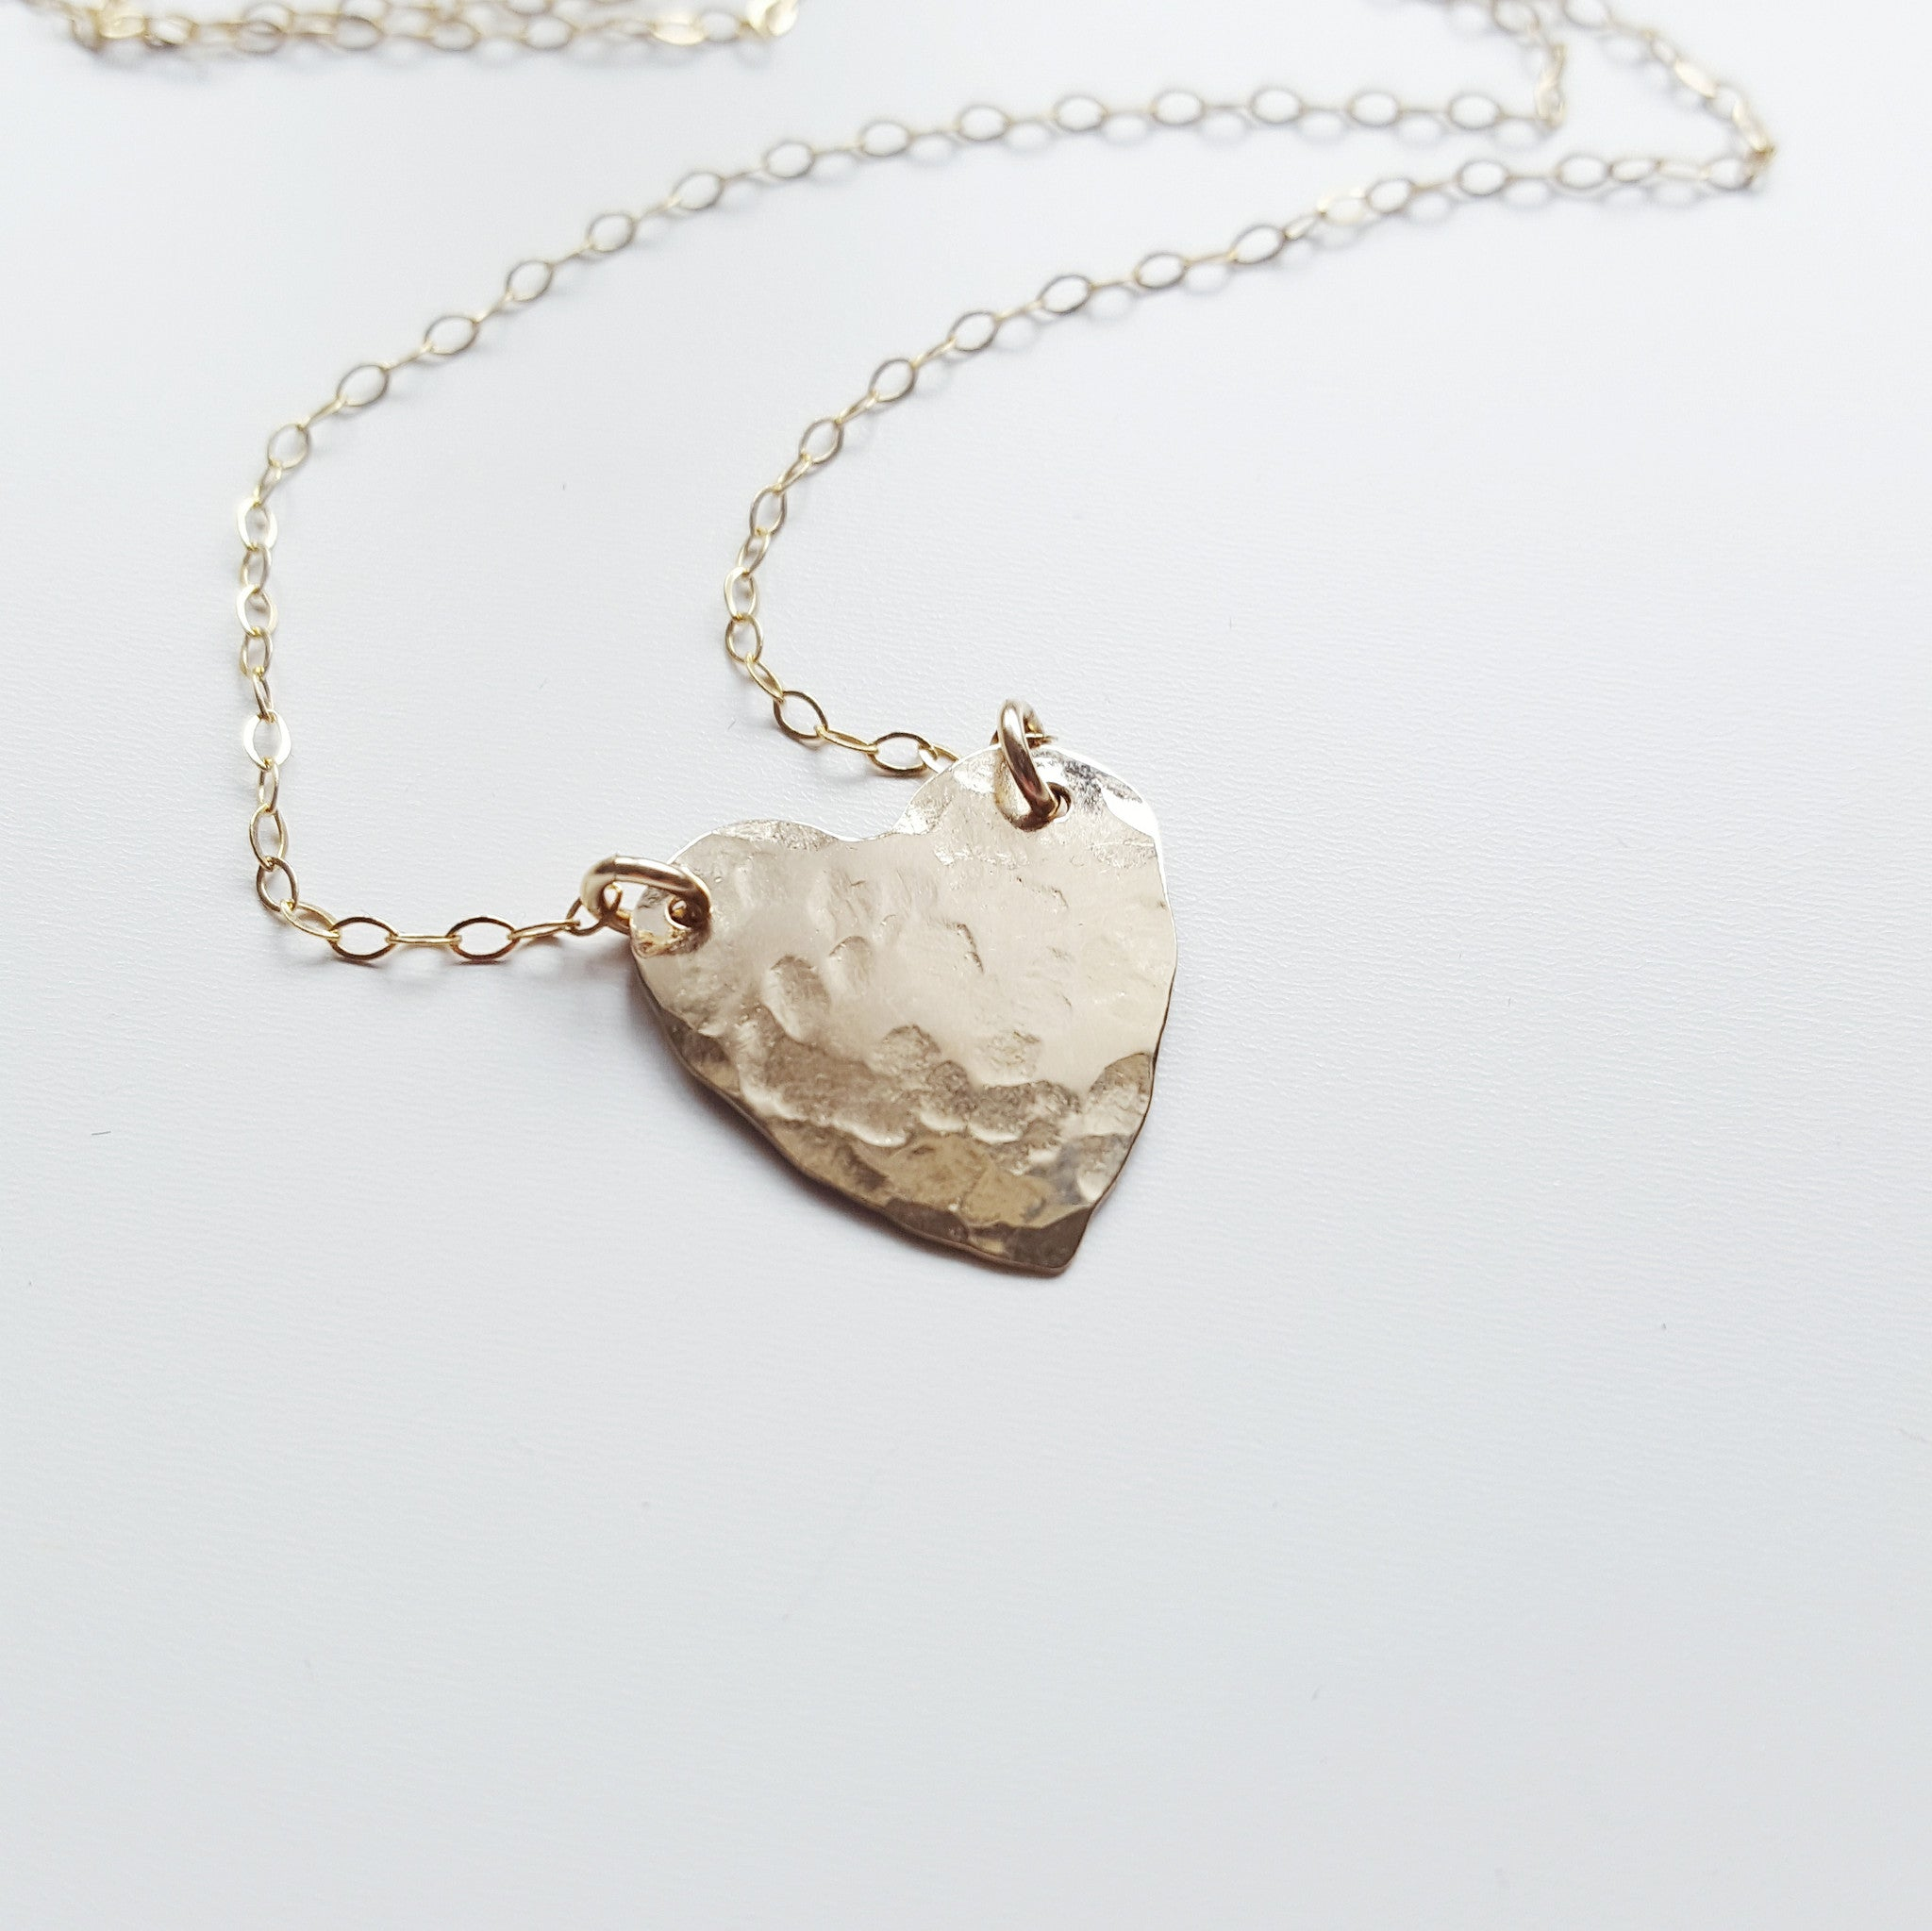 bronze hammered heart necklace with chain